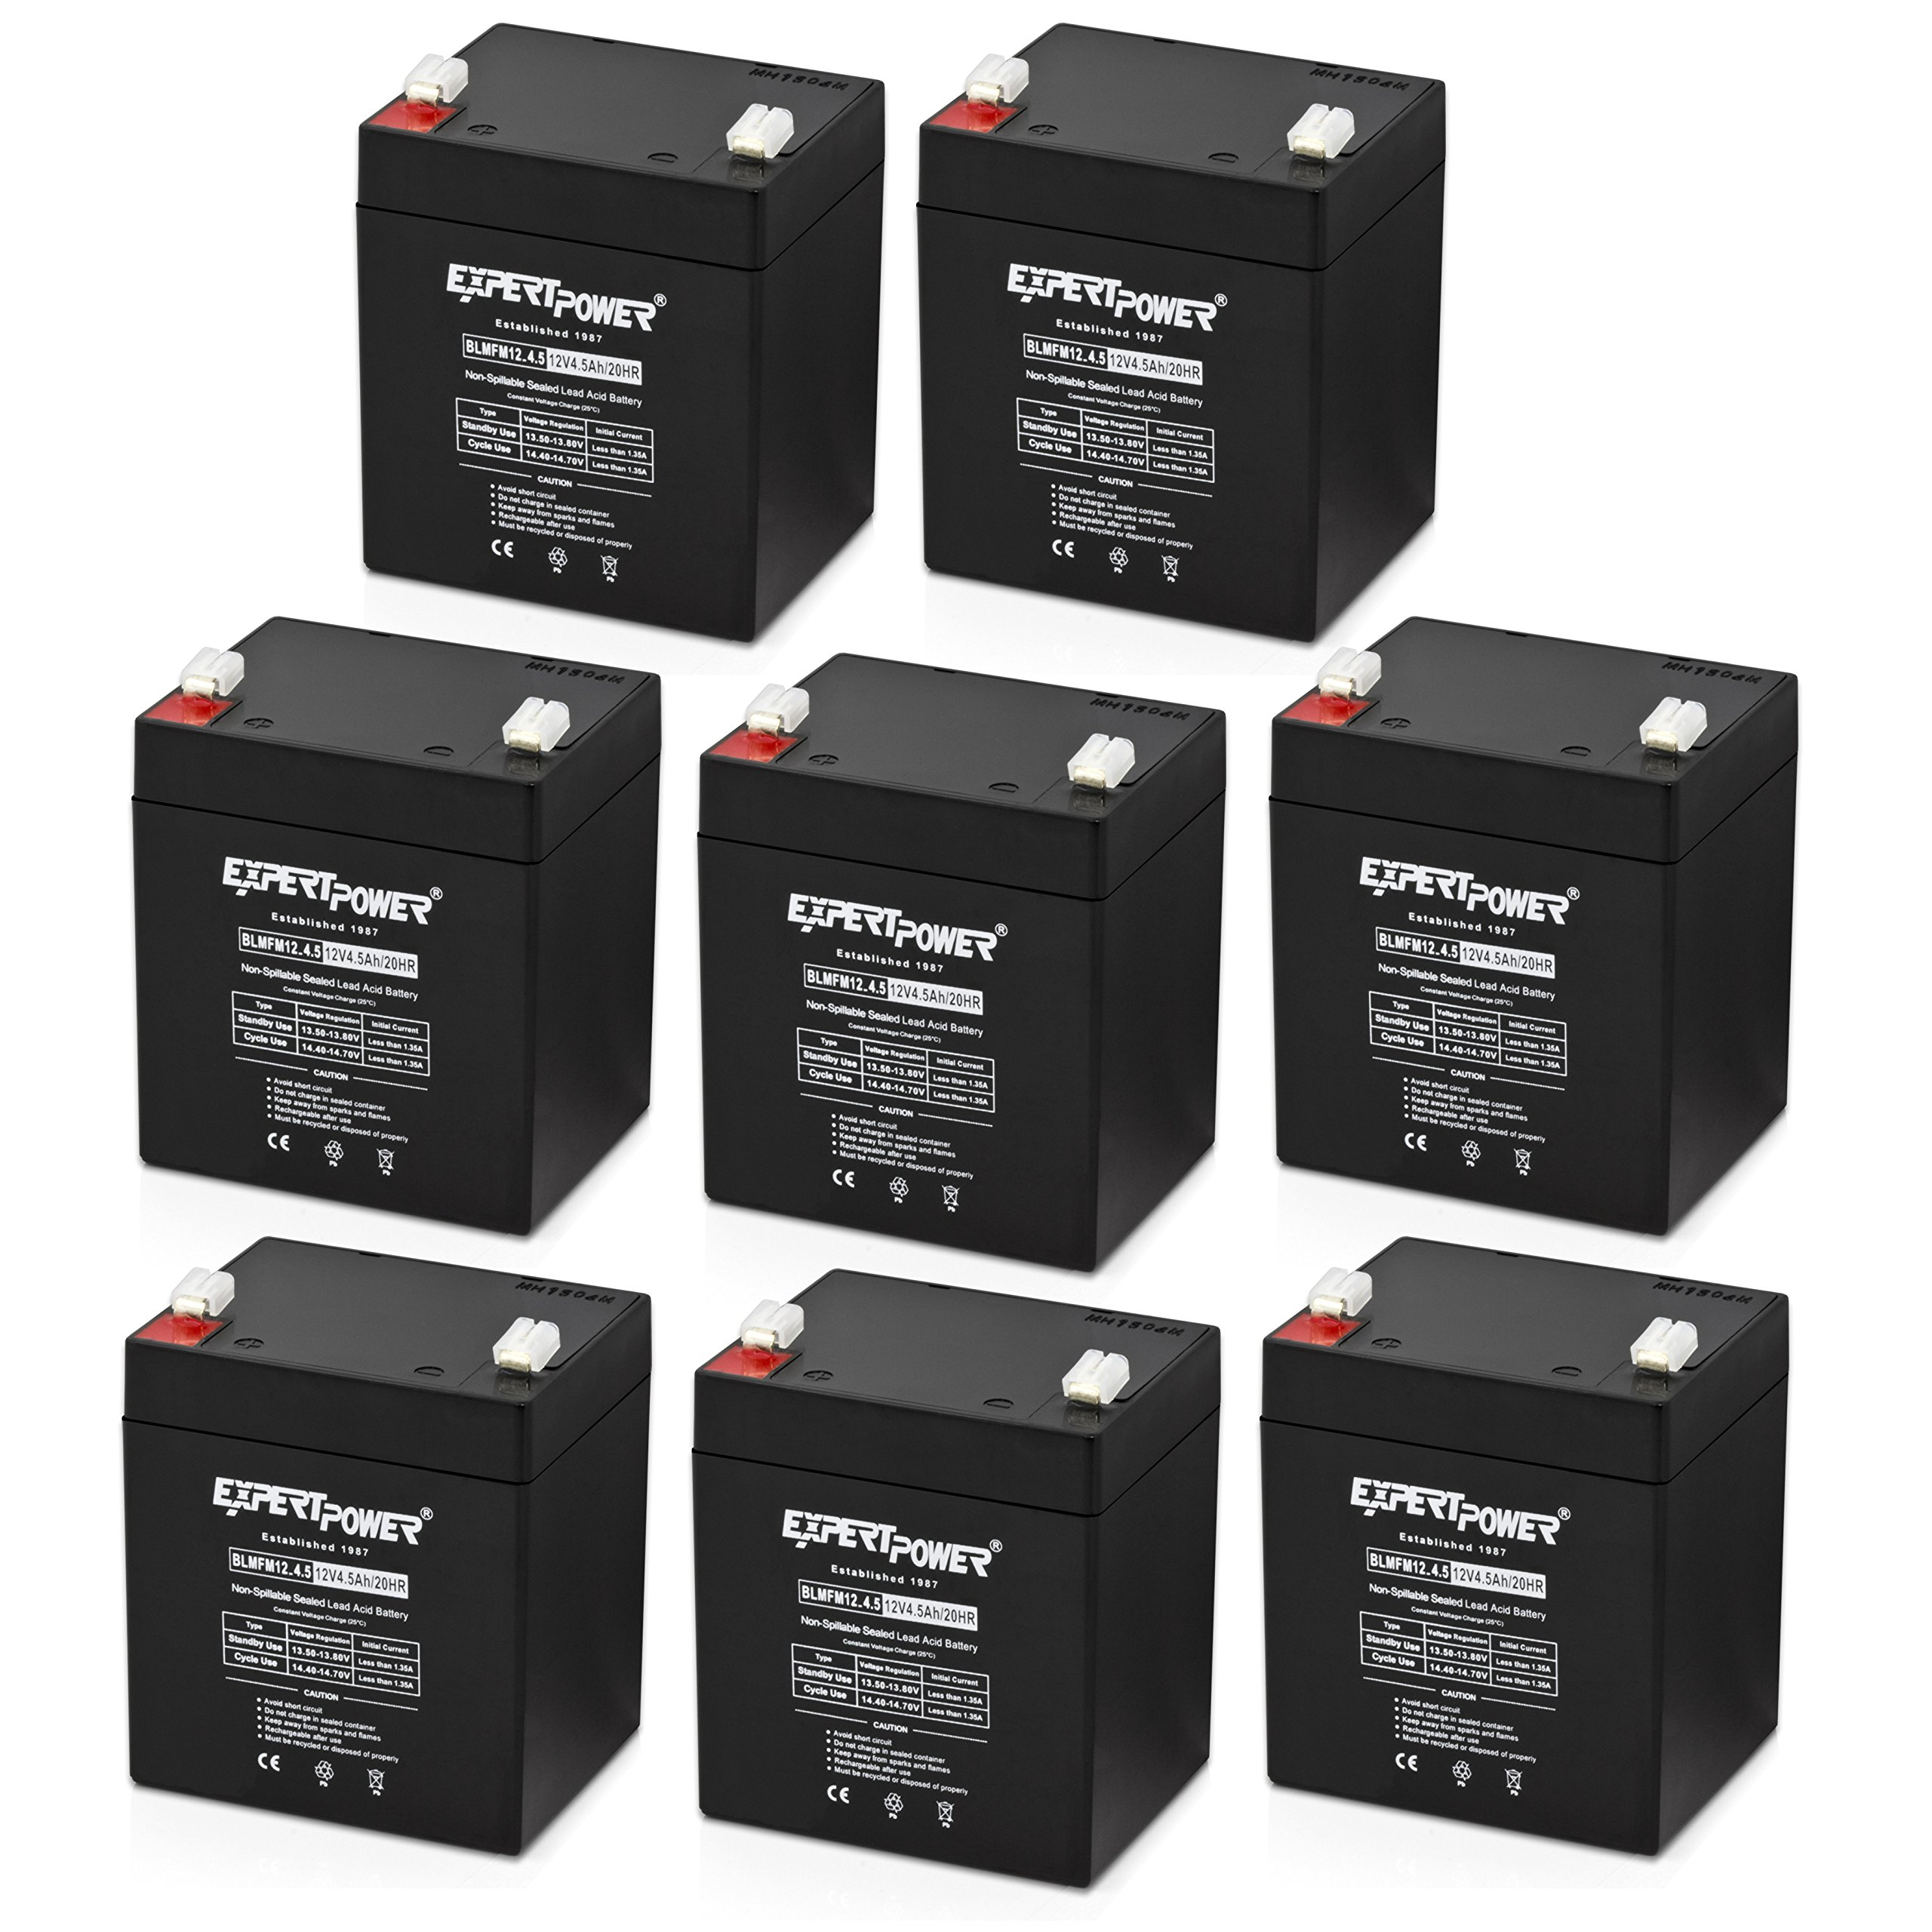 (8 Pack) ExpertPower EXP1245 12V 4.5 Amp Rechargeable Battery for Security Systems by ExpertPower